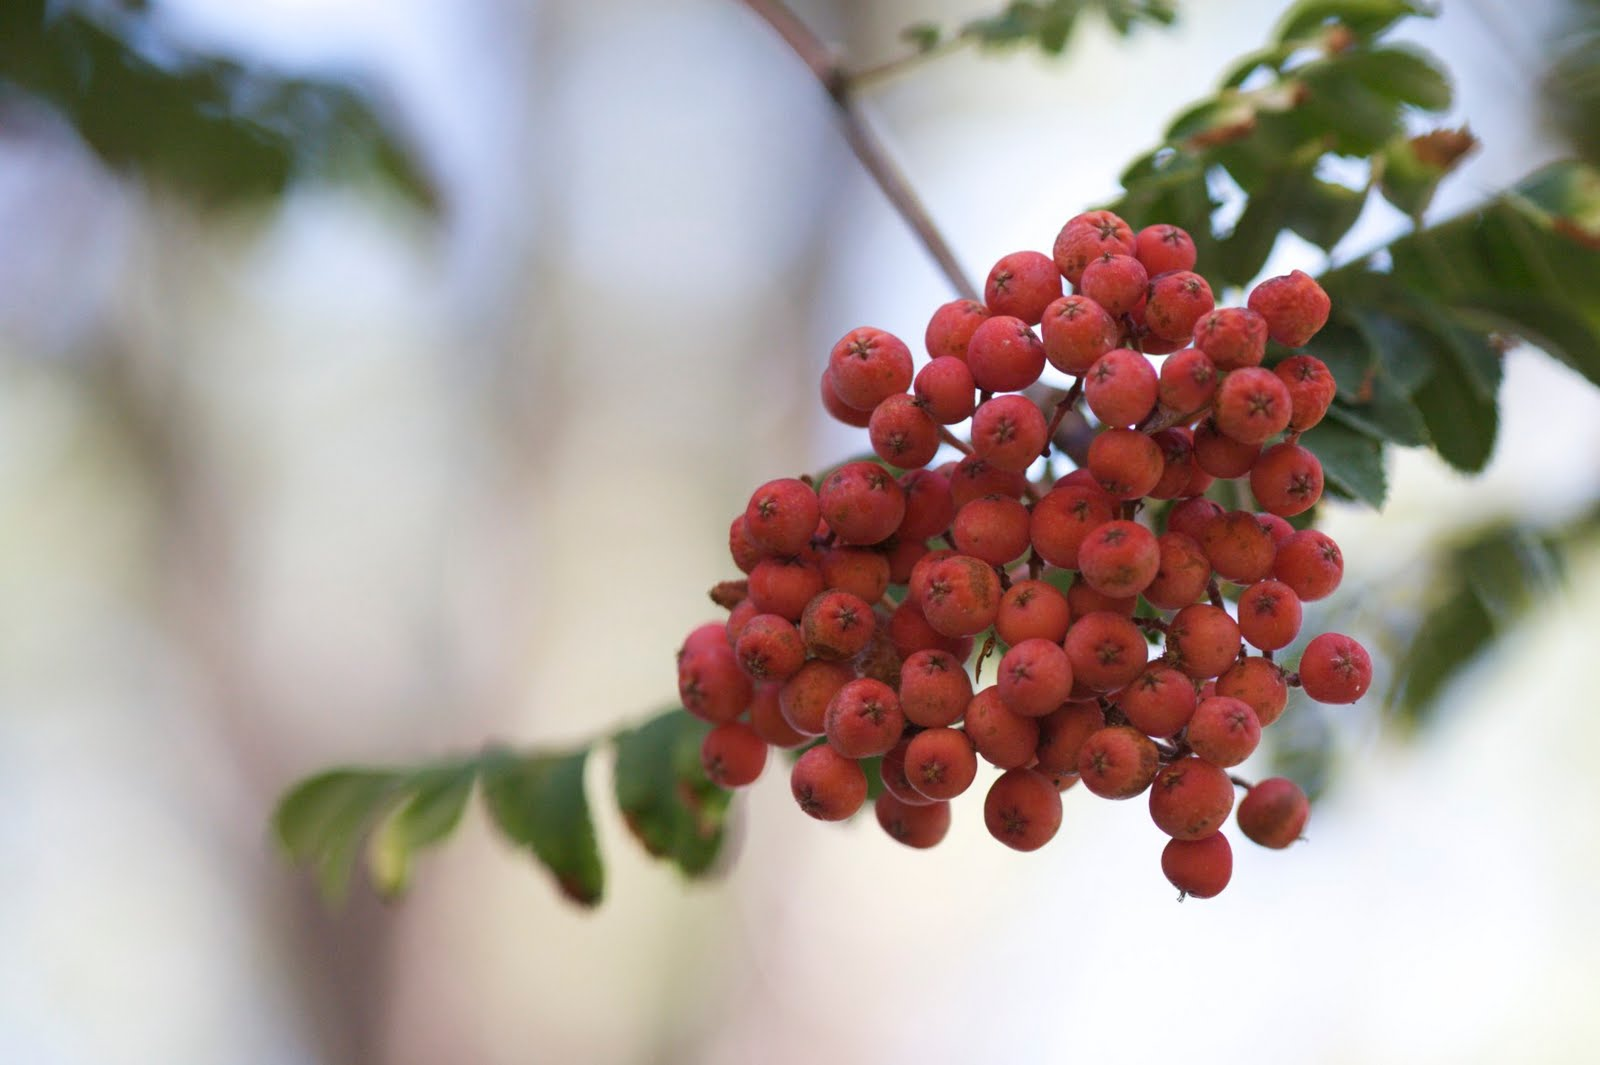 Growing Up I Was Told Mountain Ash Berries Were Poisonous M Sure The Lie Wasn T Intentional My Family Just Didn Know Any Better